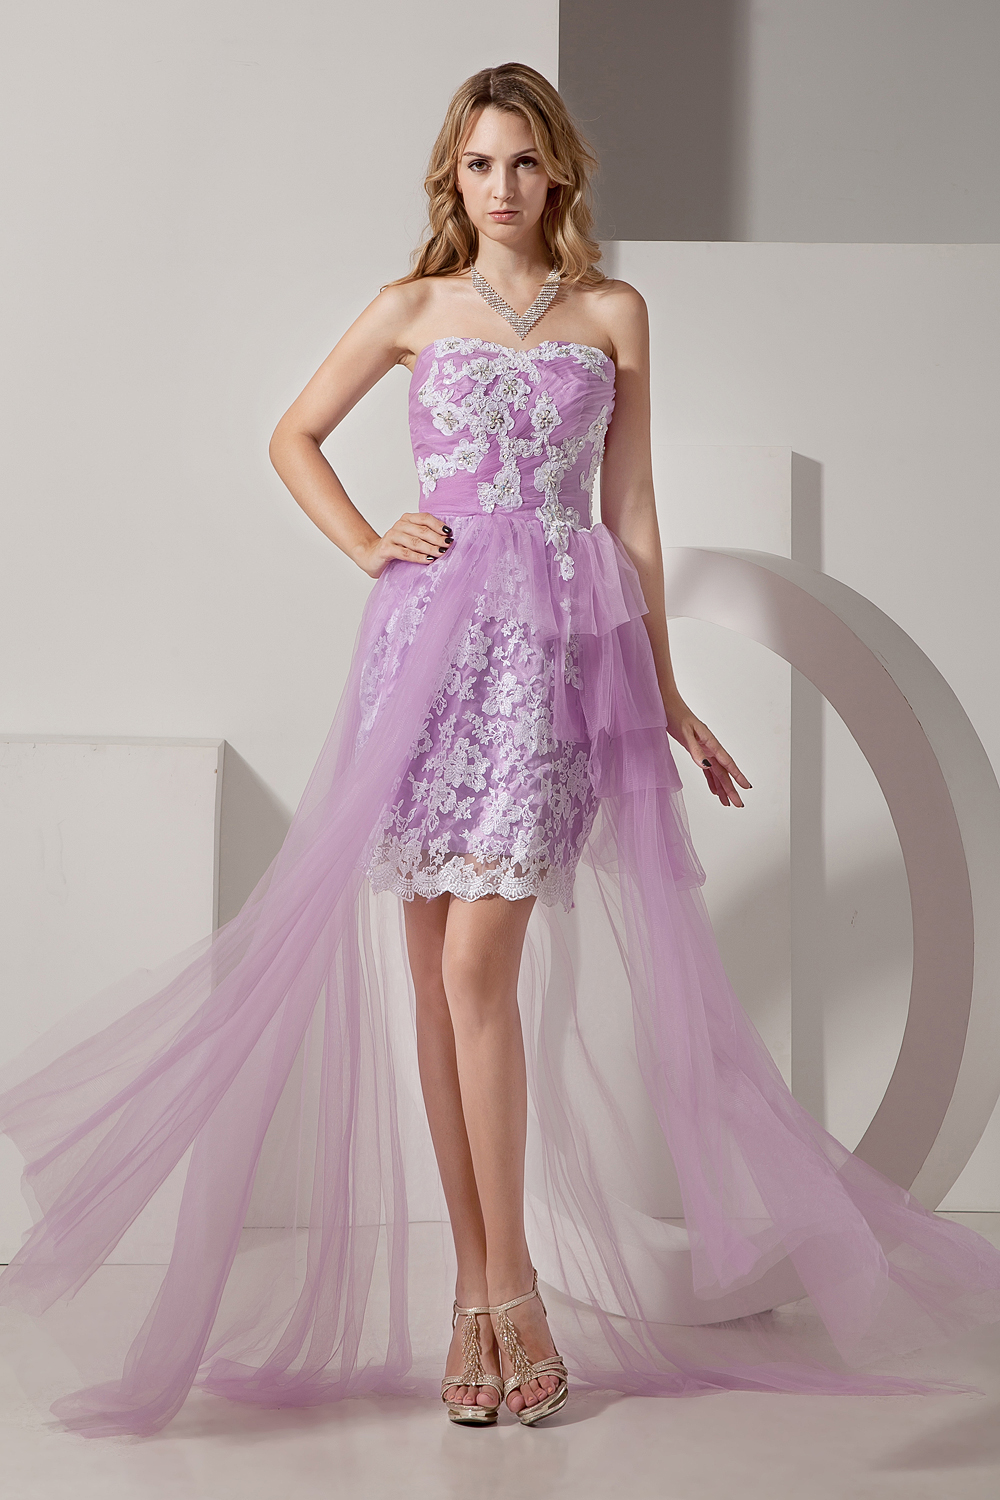 Beauty Emily appliques lace   Cocktail     Dress   tulle violet short prom   dresses   for evening party formal   dress   robe de soiree